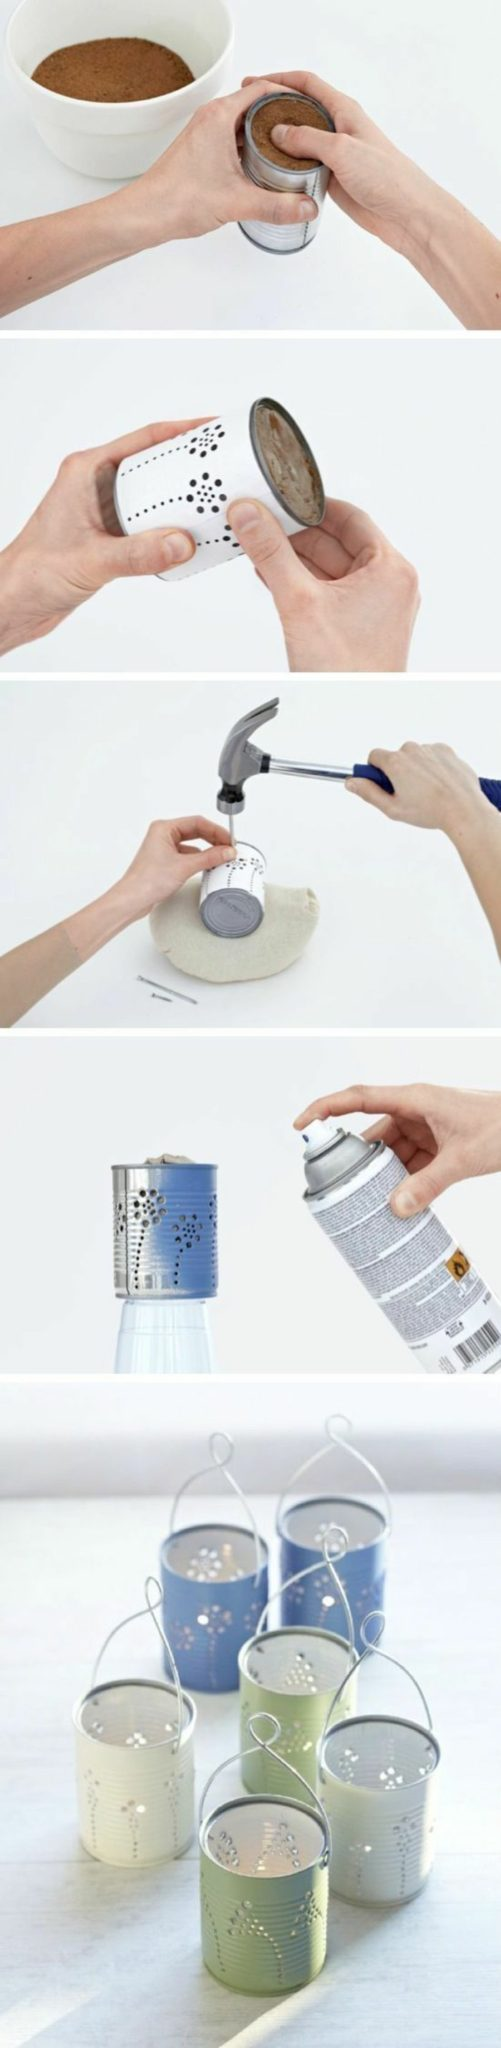 diy lanterns from metal cans11